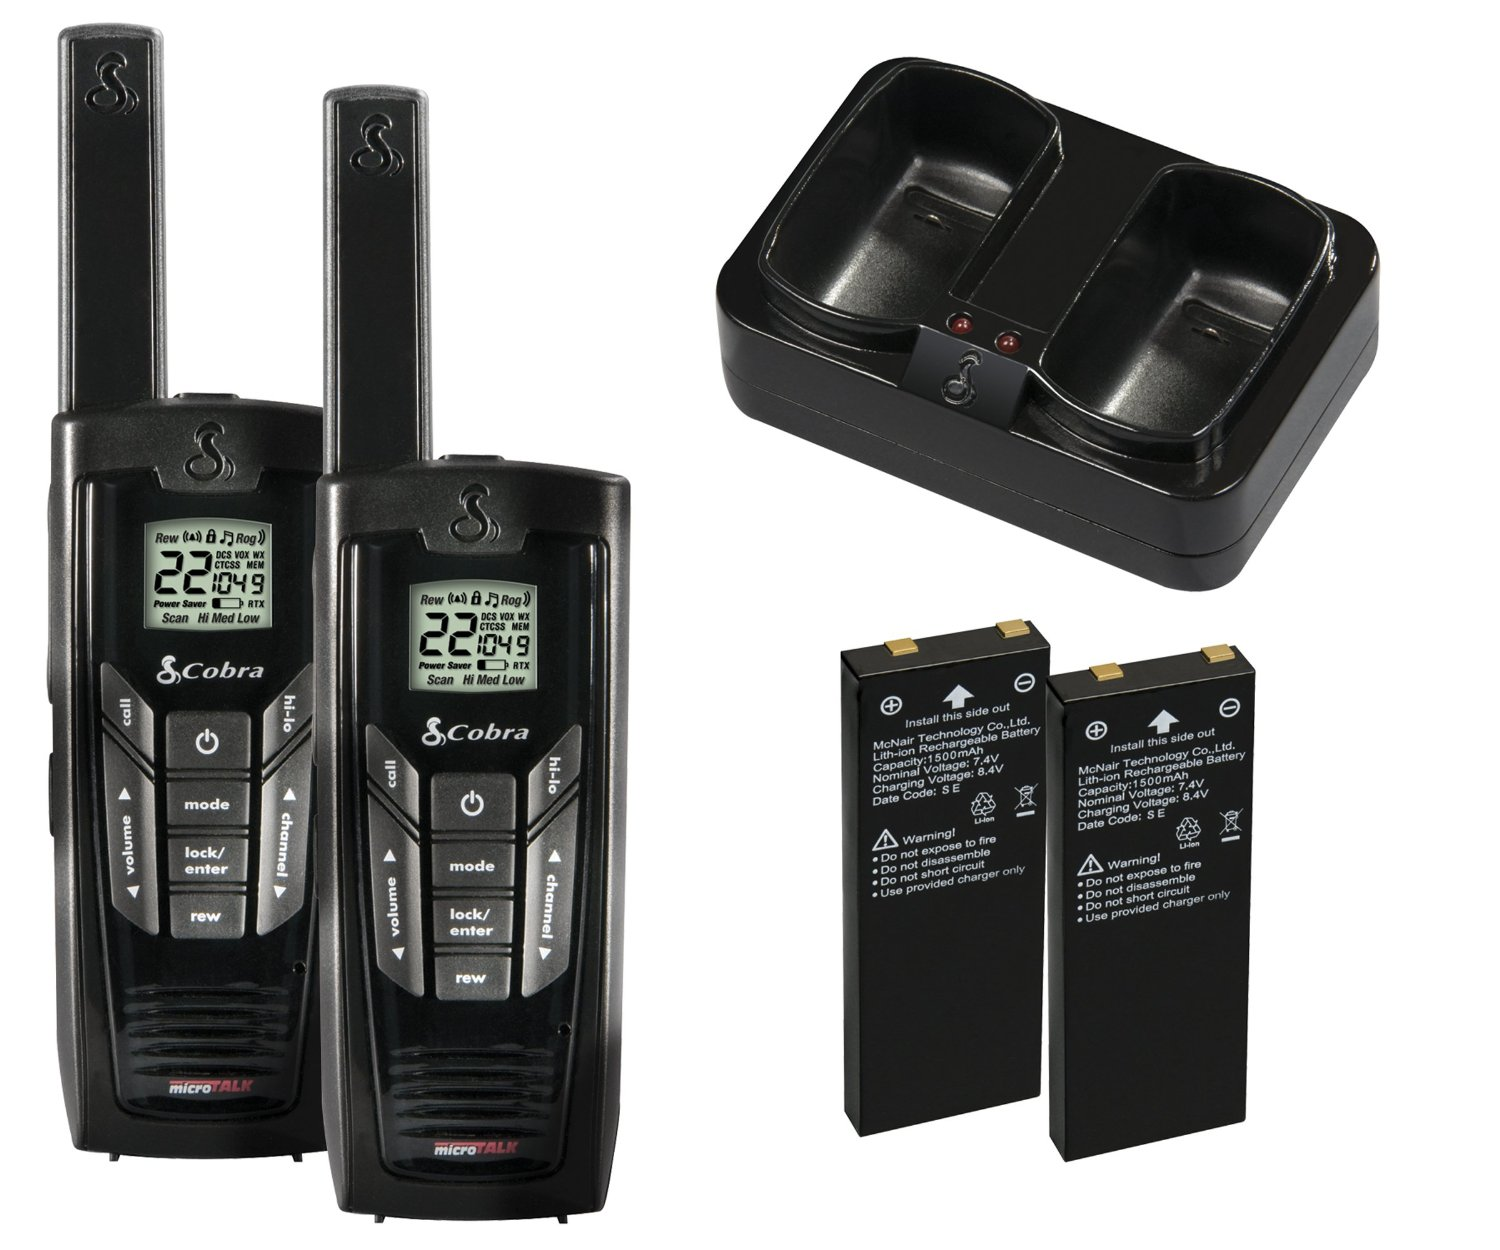 Mile High Water Talk: Amazon.com: Cobra Walkie-Talkie MicroTalk CXR925 35-Mile